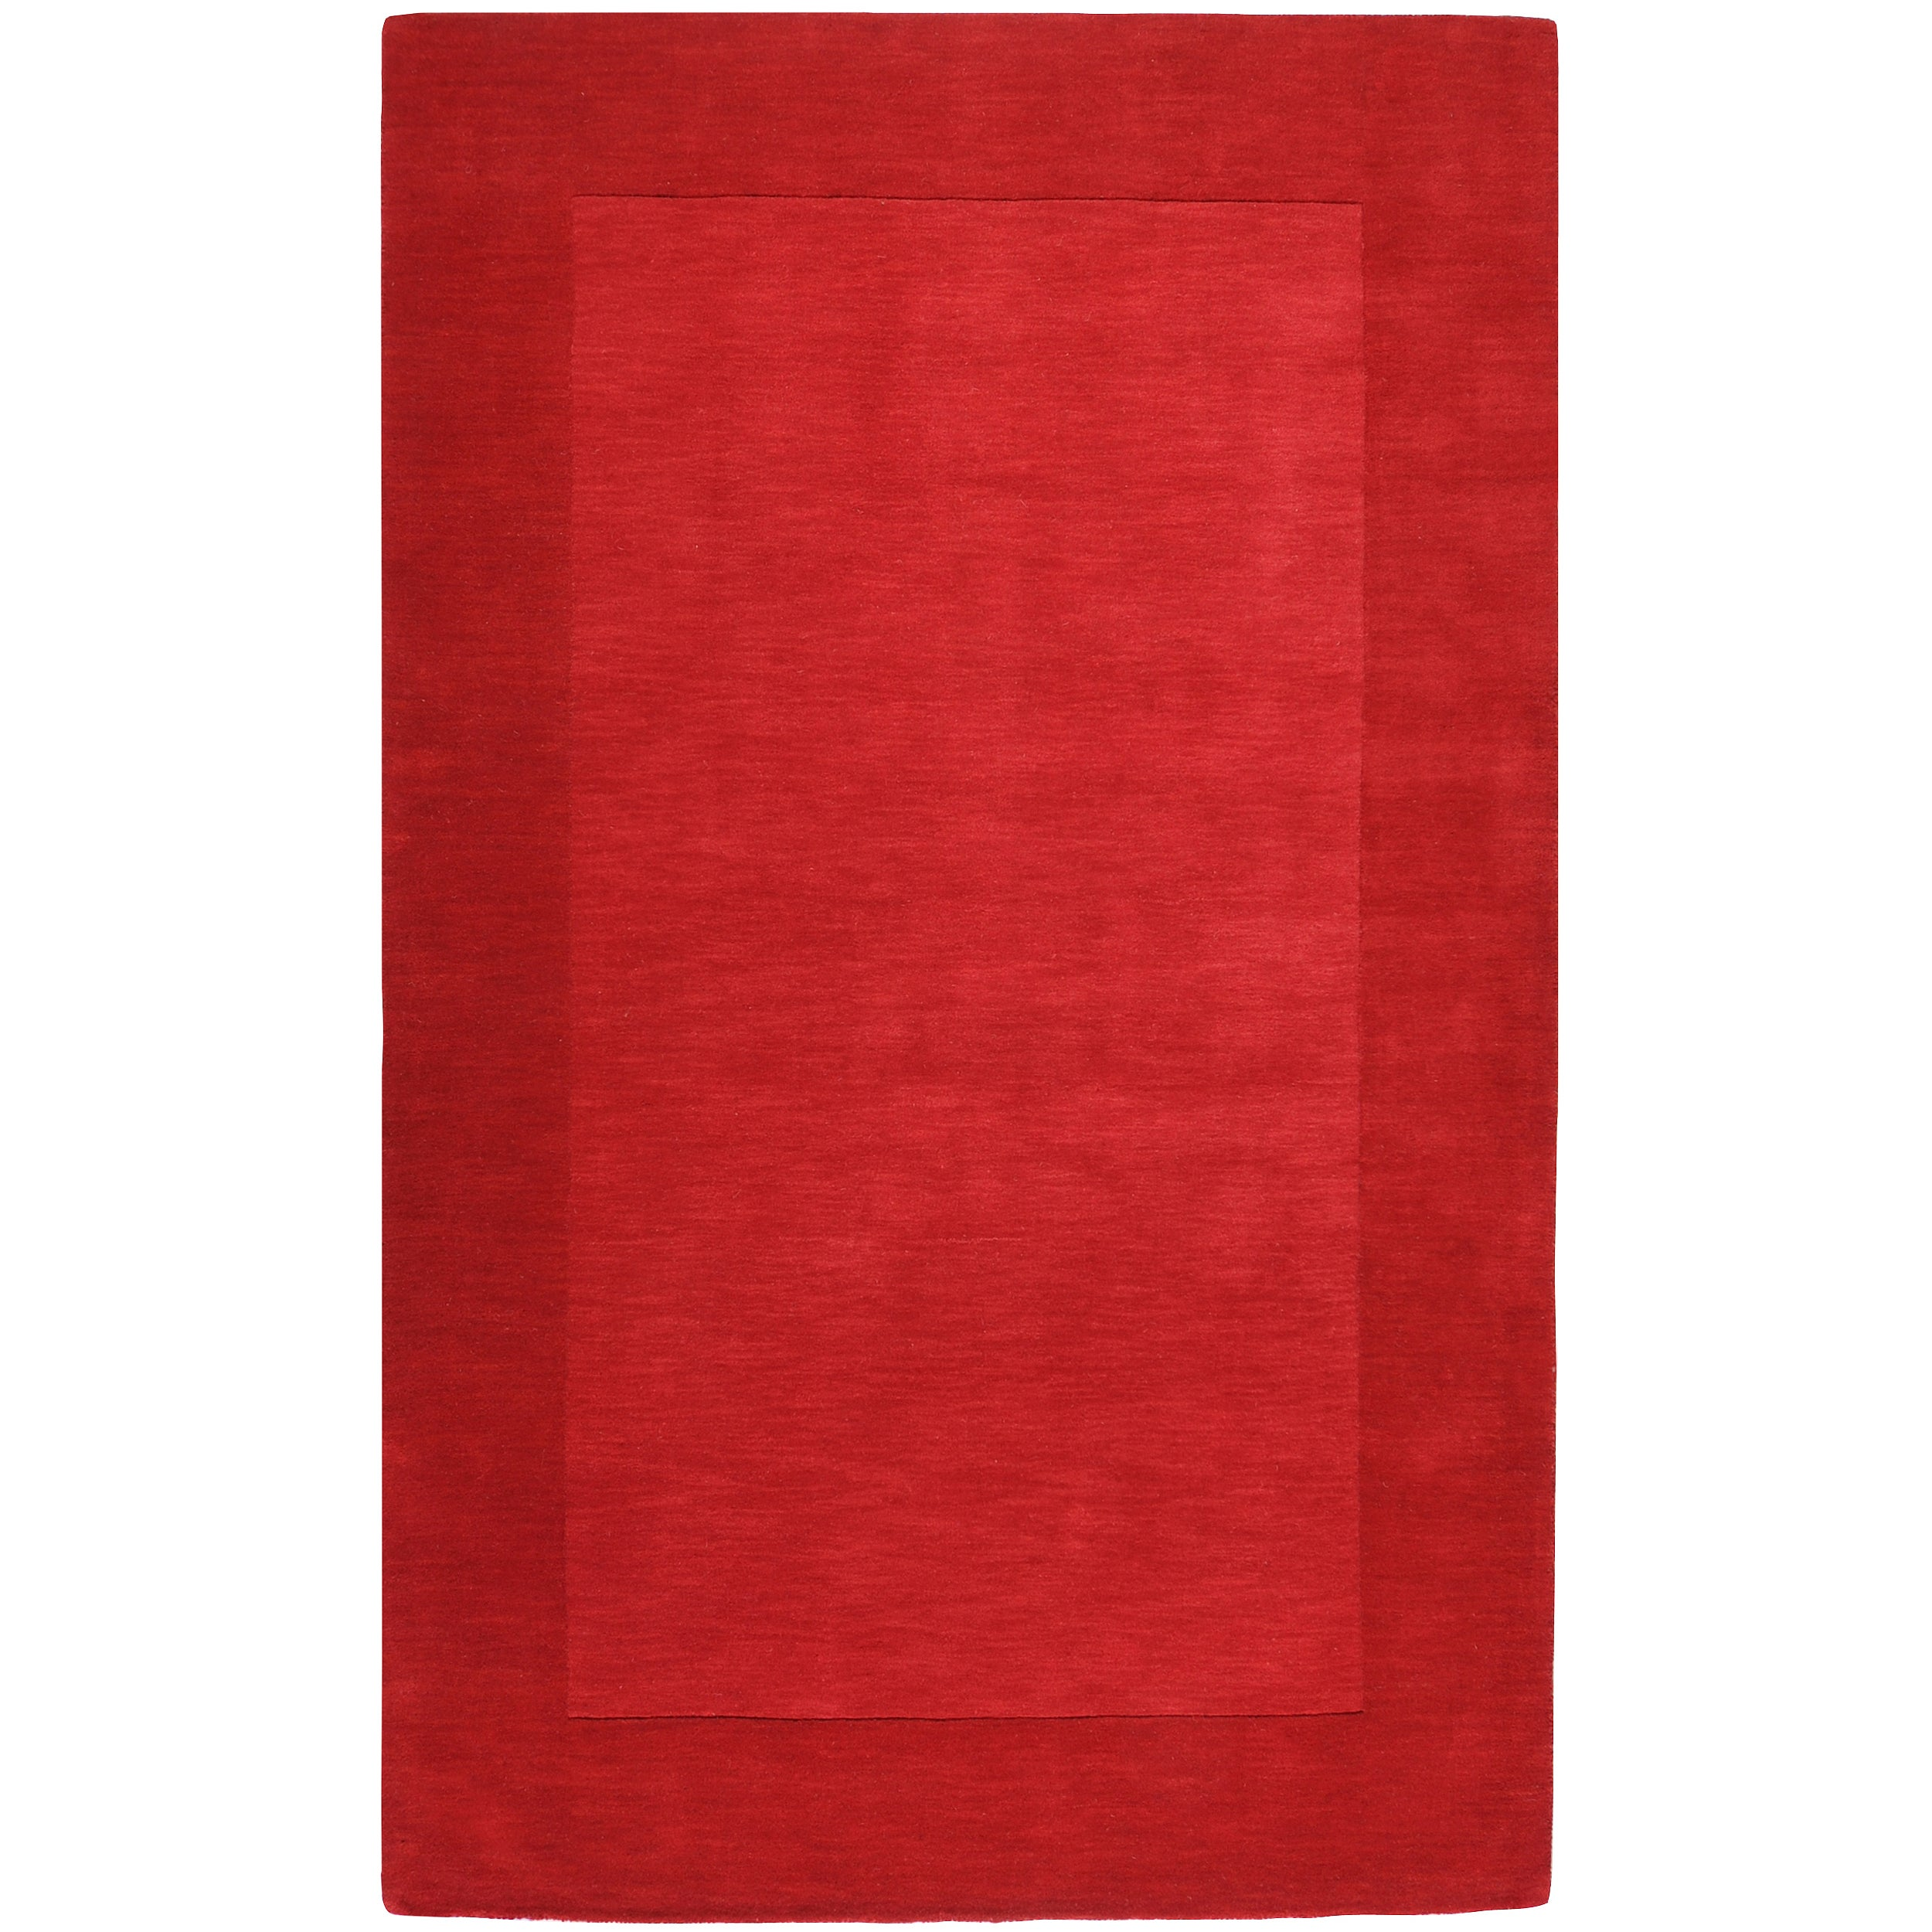 Hand-crafted Solid Red Tone-On-tone Bordered Cryo Wool Area Rug (5' x 8')